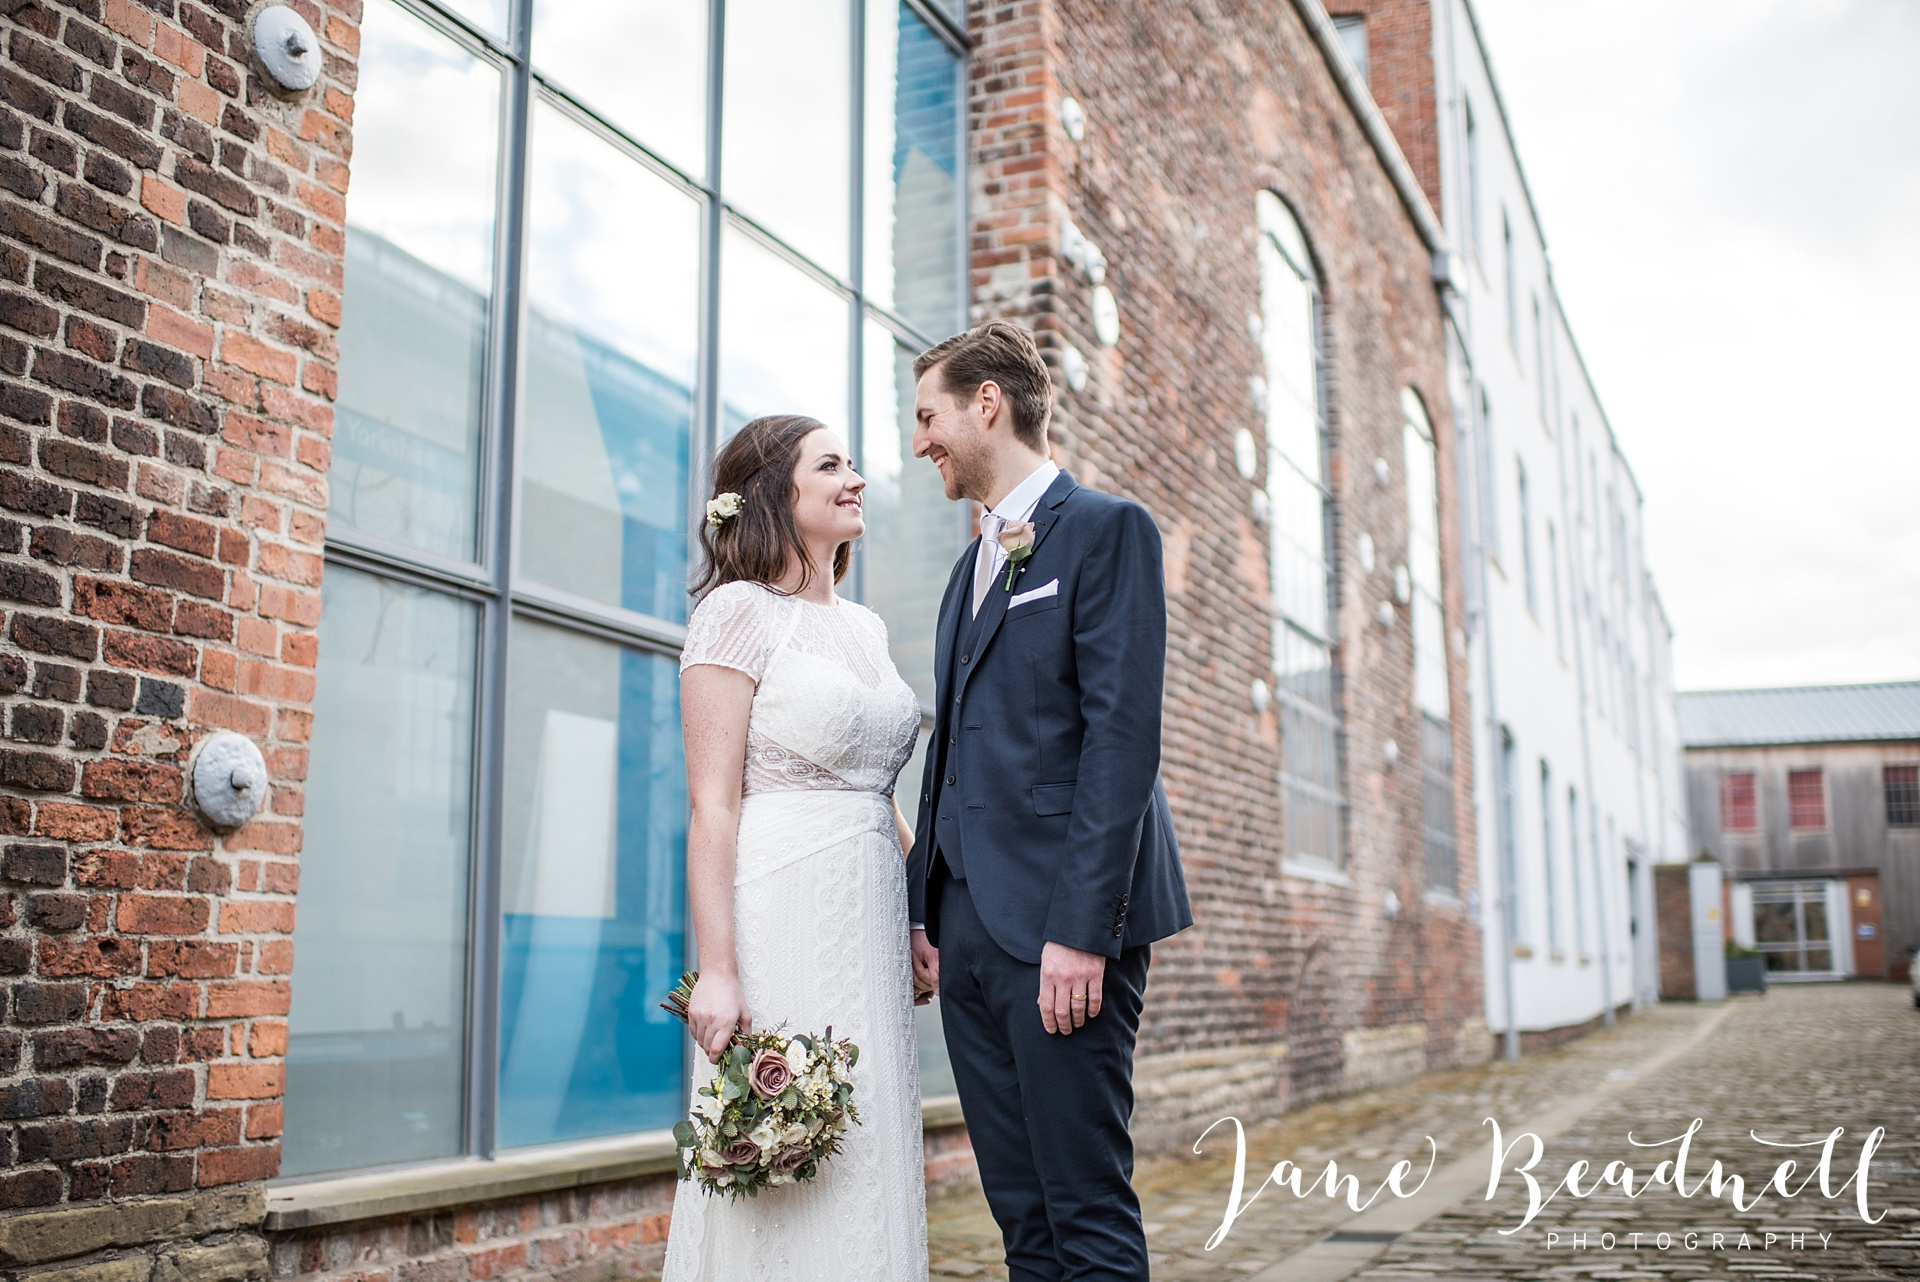 Wedding photography Cross Keys Leeds Wedding Jane Beadnell Photography_0090